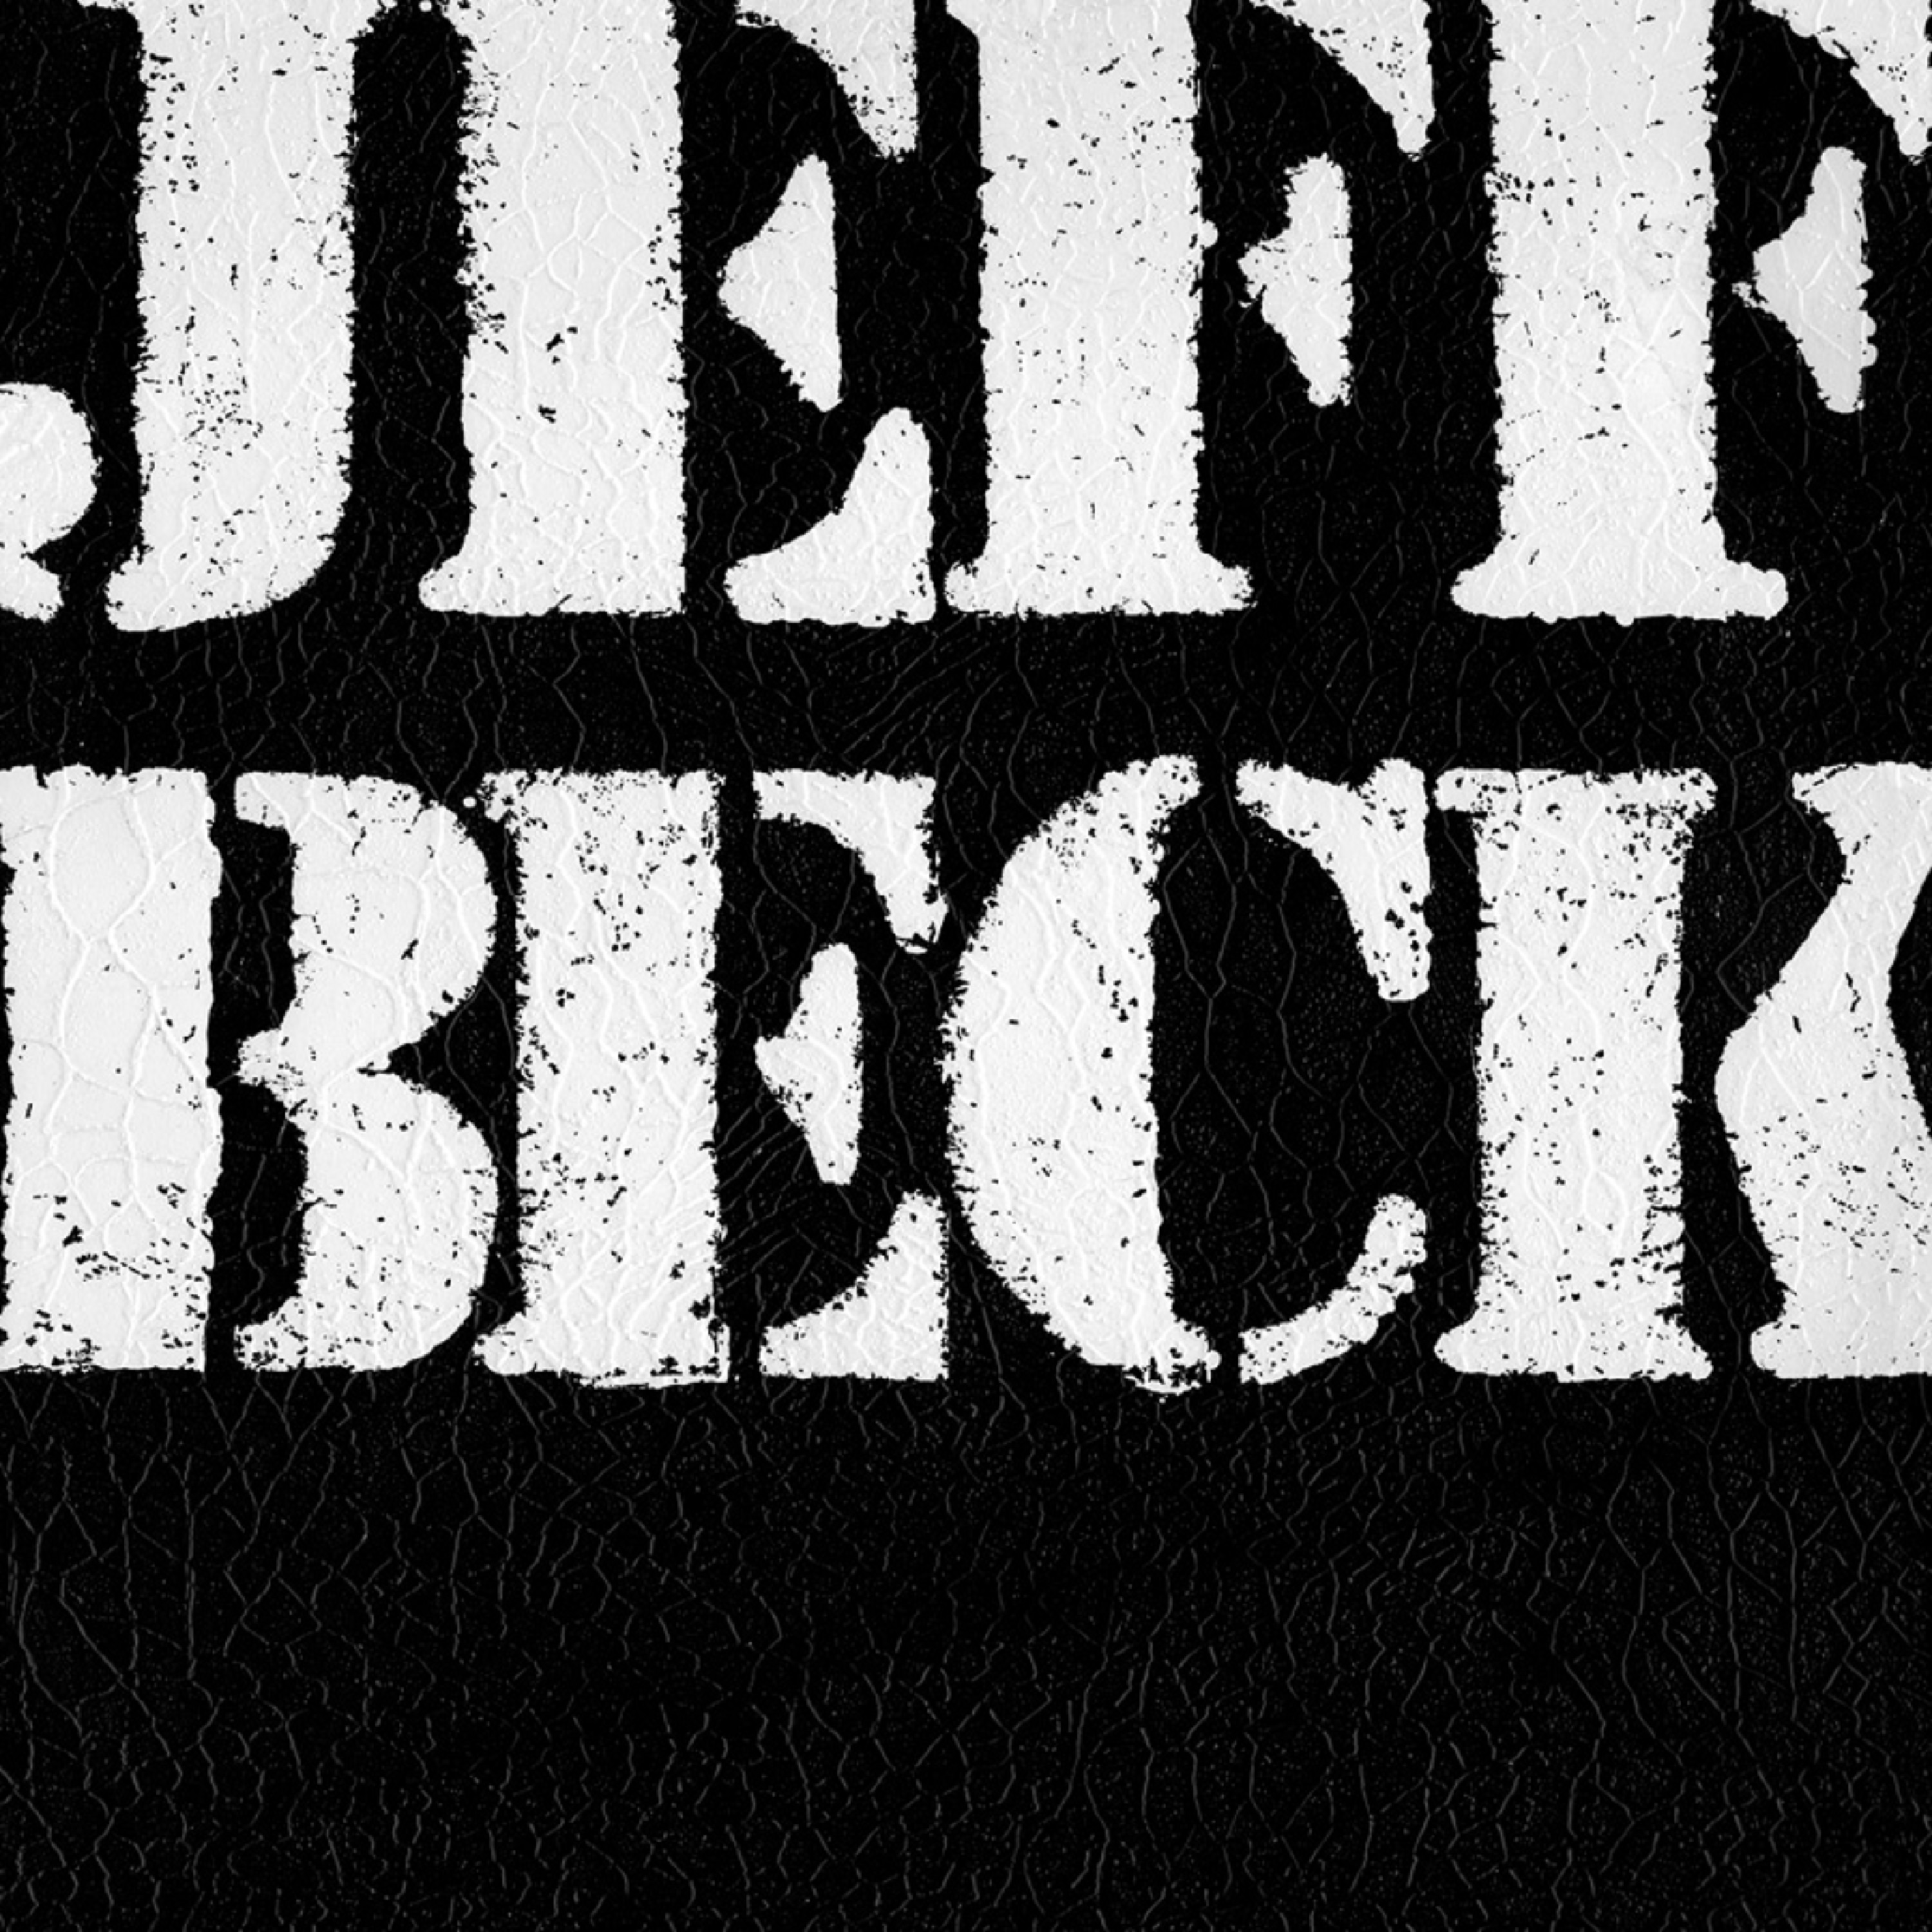 Jeff Beck - There And Back (180 Gram Translucent Blue Audiophile Vinyl/40th Anniversary Limited Edition/Gatefold Cover